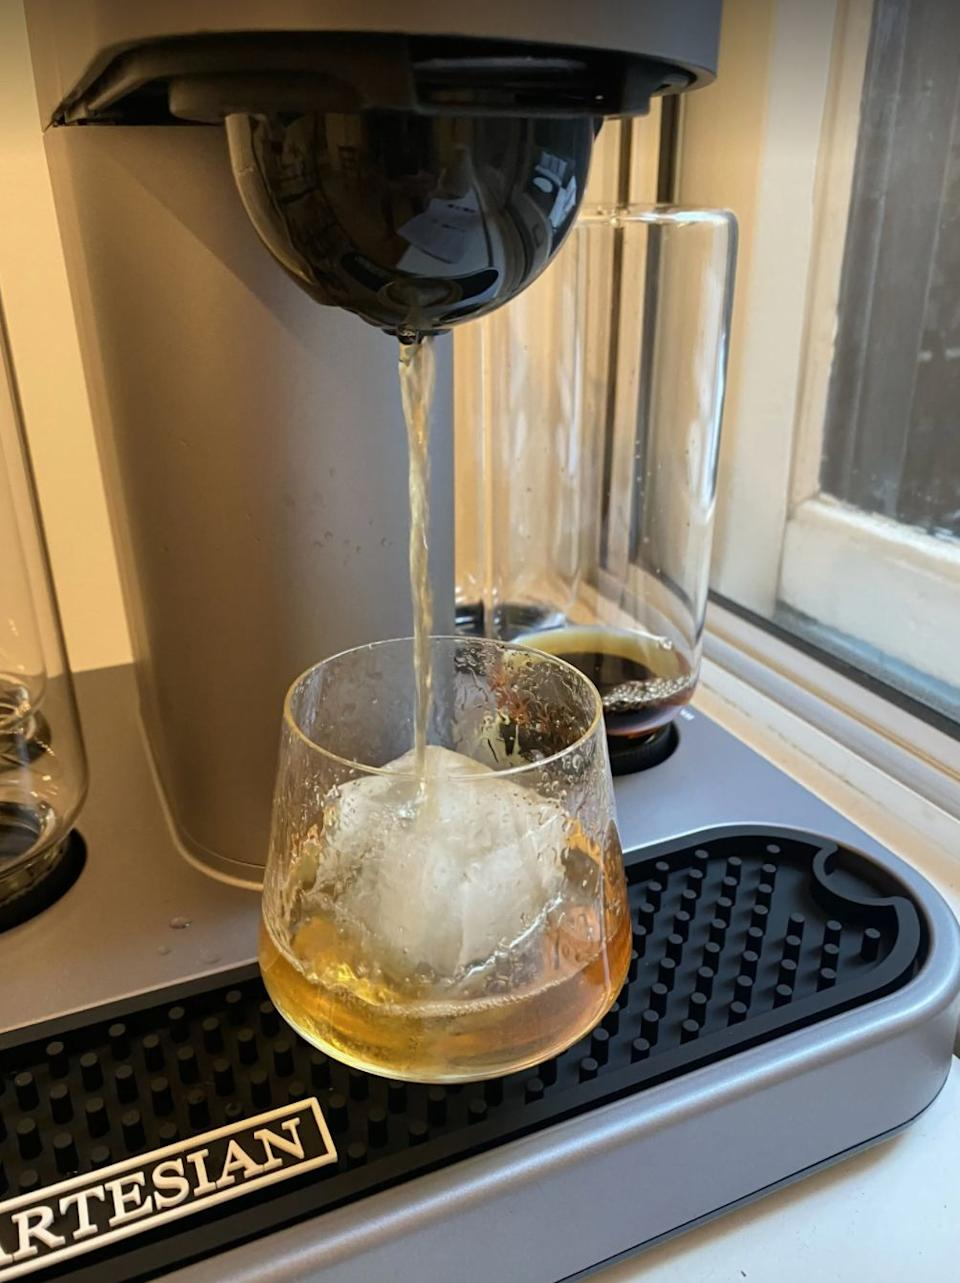 """It'llturn your living space into the best bar in town. All you have to do is insert a cocktail pod of your choice, fill a bottle with the liquor to match, choose your cocktail strength, push a button and enjoy!<br /><br /><strong>Promising review:</strong>""""When I first caught wind of the Bartesian premium cocktail machine ($349.99 on Amazon), my first thought was does anyone actually need this gadget? But after trying it for myself, I can say the answer is a firm YES, and here's why. I love making cocktails at home, and while I'm no bartender, I feel very comfortable shaking a spicy margarita, stirring a negroni, or whipping up a Pisco sour. But making craft cocktails at home requires many (often expensive) ingredients, bar tools, time and effort.<strong>With the Bartesian though, you can make fancy drinks with the click of a button — literally.</strong>Once you turn the Bartesian on, it prompts you to insert a cocktail capsule. The smart gadget recognizes the cocktail you're trying to make and will ensure you've placed the proper spirit in the bottle (I know, it's mind-blowing). Next, it prompts you to choose your cocktail strength (there's even a mocktail option), and to place a glass with ice underneath the spout. Next, the Bartesian will start pouring your craft cocktail. The whole process takes about 20 seconds and it's all very exciting.<strong>With many bars closed and people quarantining or feeling hesitant about going out to eat, this gadget allows you to make professional-quality cocktails at home.</strong>"""" —<a href=""""https://www.buzzfeed.com/hannahloewentheil"""" target=""""_blank"""" rel=""""noopener noreferrer"""">Hannah Loewentheil</a><br /><br /><strong><a href=""""https://www.amazon.com/dp/B07PJ5Q943?&linkCode=ll1&tag=huffpost-bfsyndication-20&linkId=8d395080be5c909f682c19dd1d9a7c54&language=en_US&ref_=as_li_ss_tl"""" target=""""_blank"""" rel=""""noopener noreferrer"""">Get it from Amazon for $349.85.</a></strong>"""